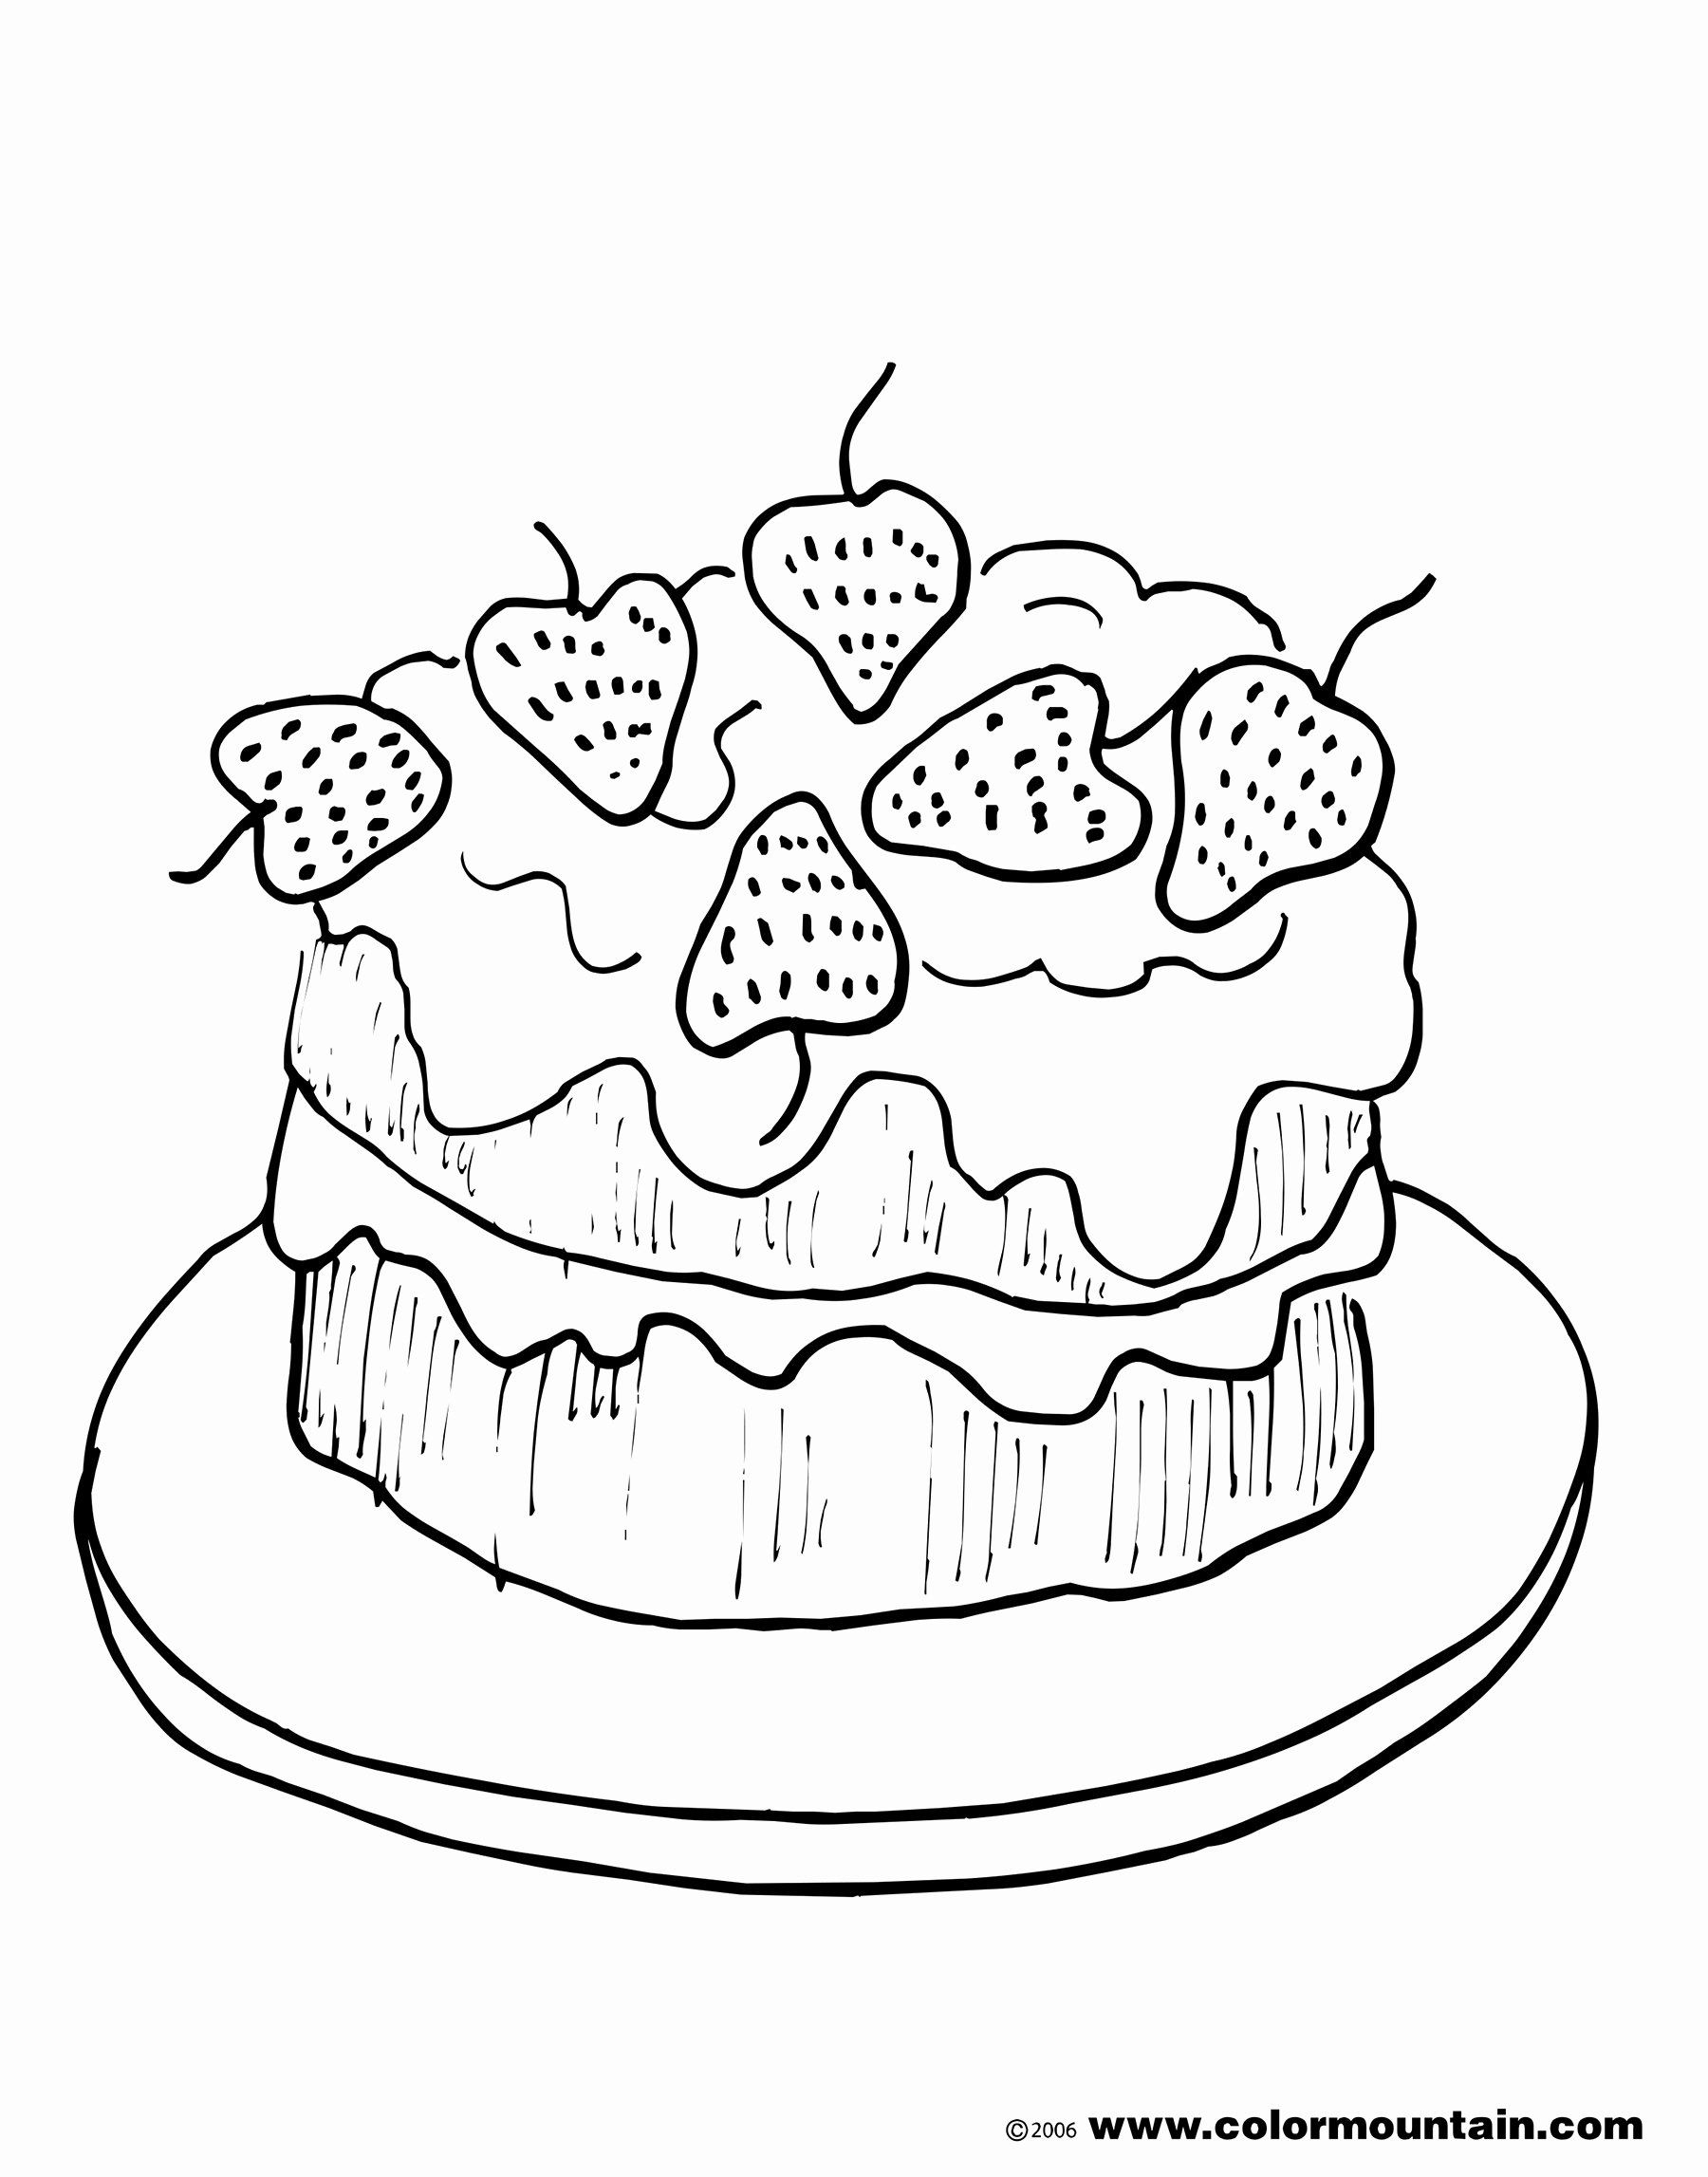 Cake Printable Coloring Pages Inspirational Simple Cake Drawing At Getdrawings Cupcake Coloring Pages Candy Coloring Pages Birthday Coloring Pages